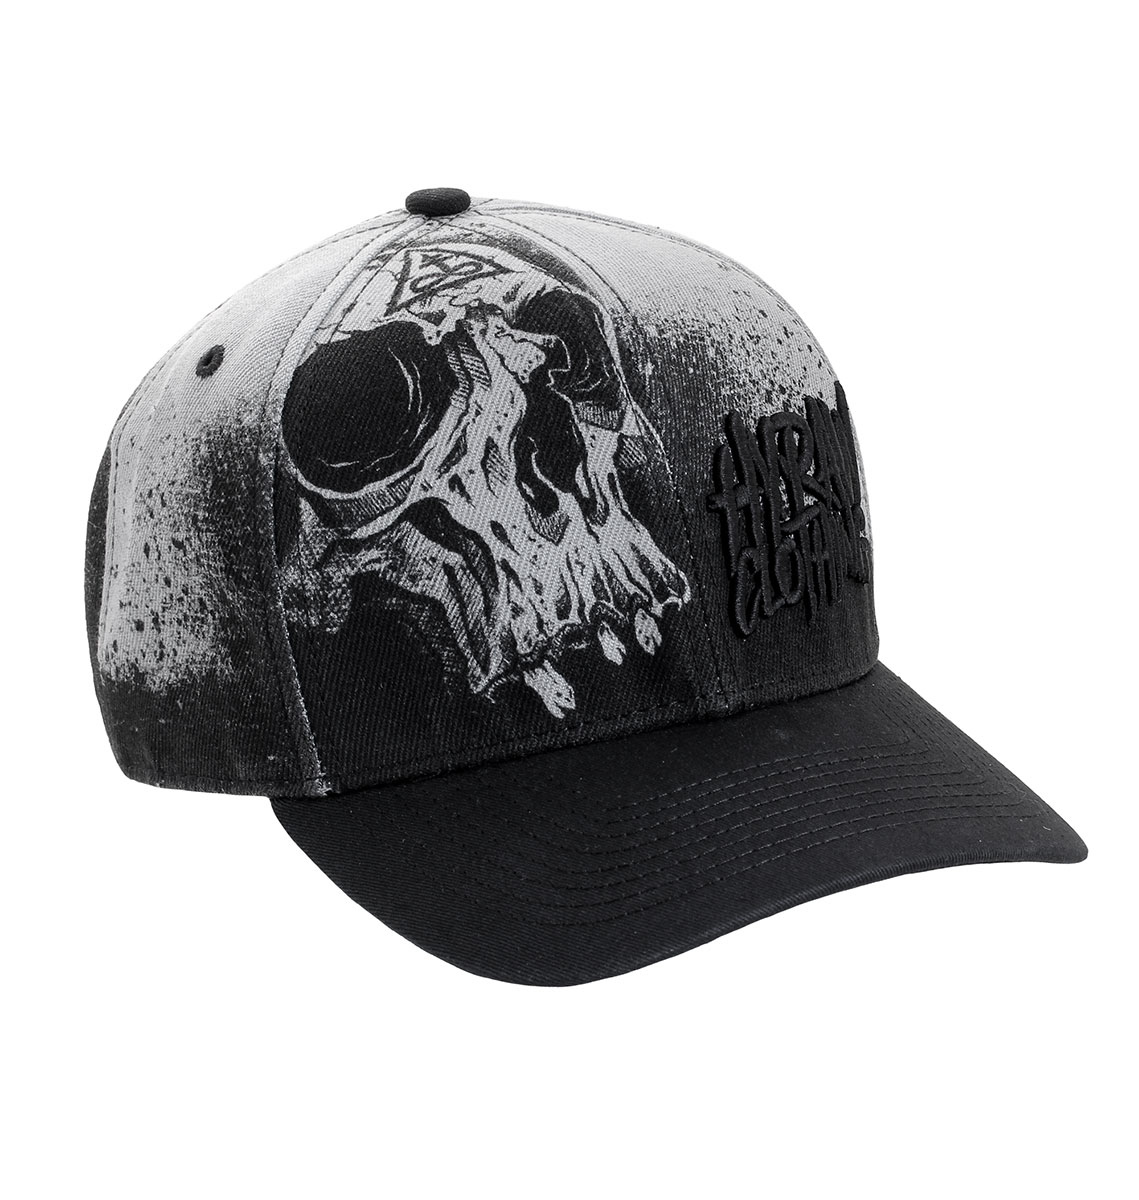 CASQUETTE TRUCKER MISERY